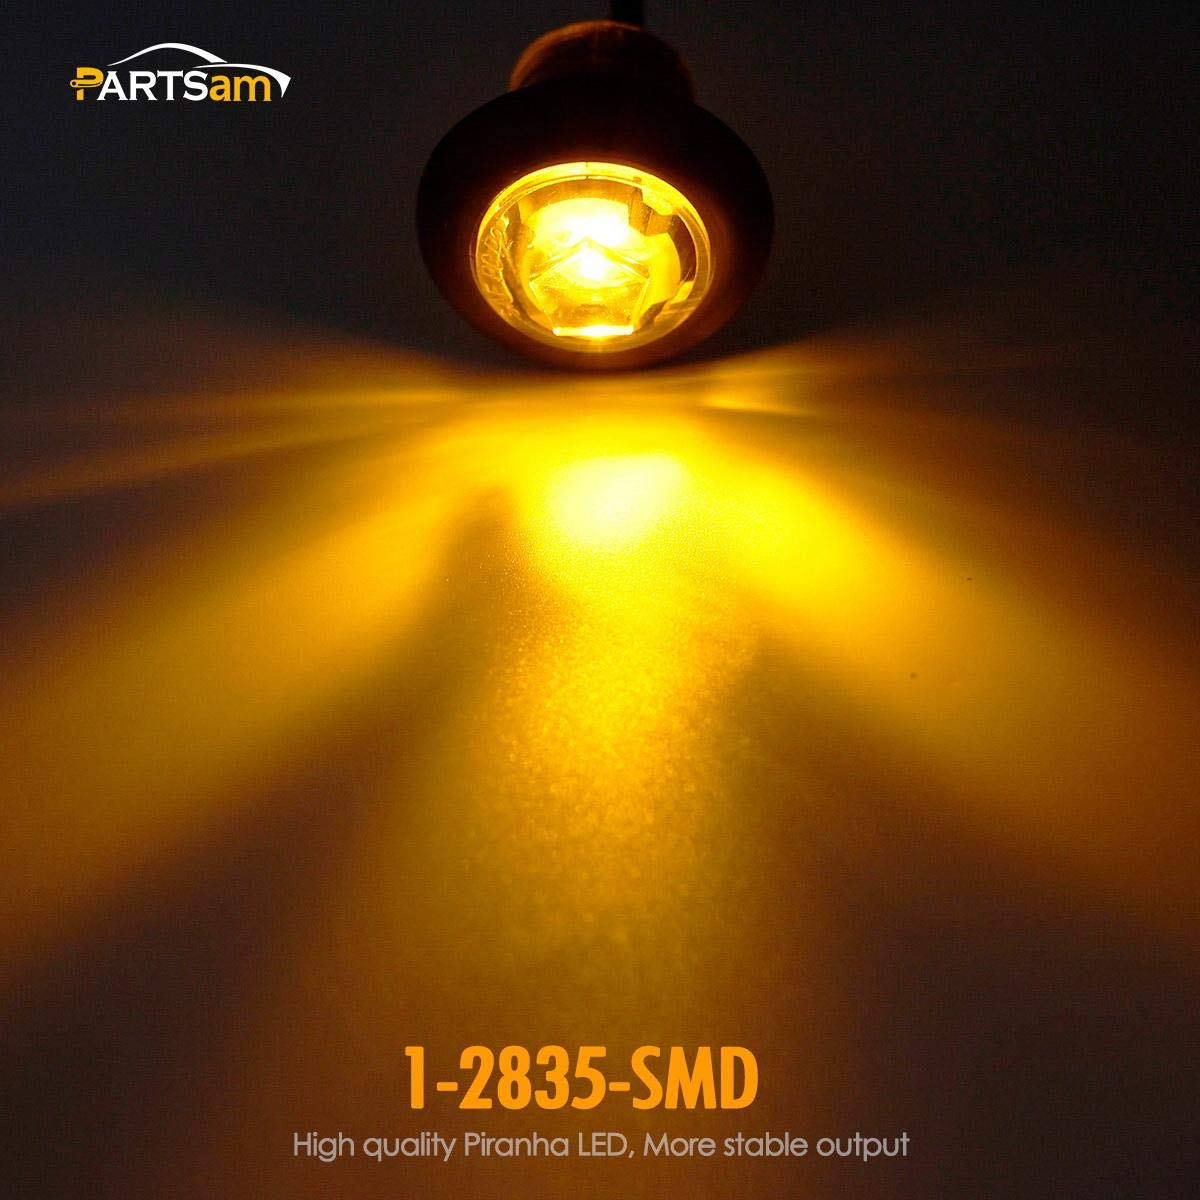 Partsam 5x3//4LED Bullet Side Markers Truck Trailer Lamp Clear Lens Two wire Blue Sealed w//Plugs